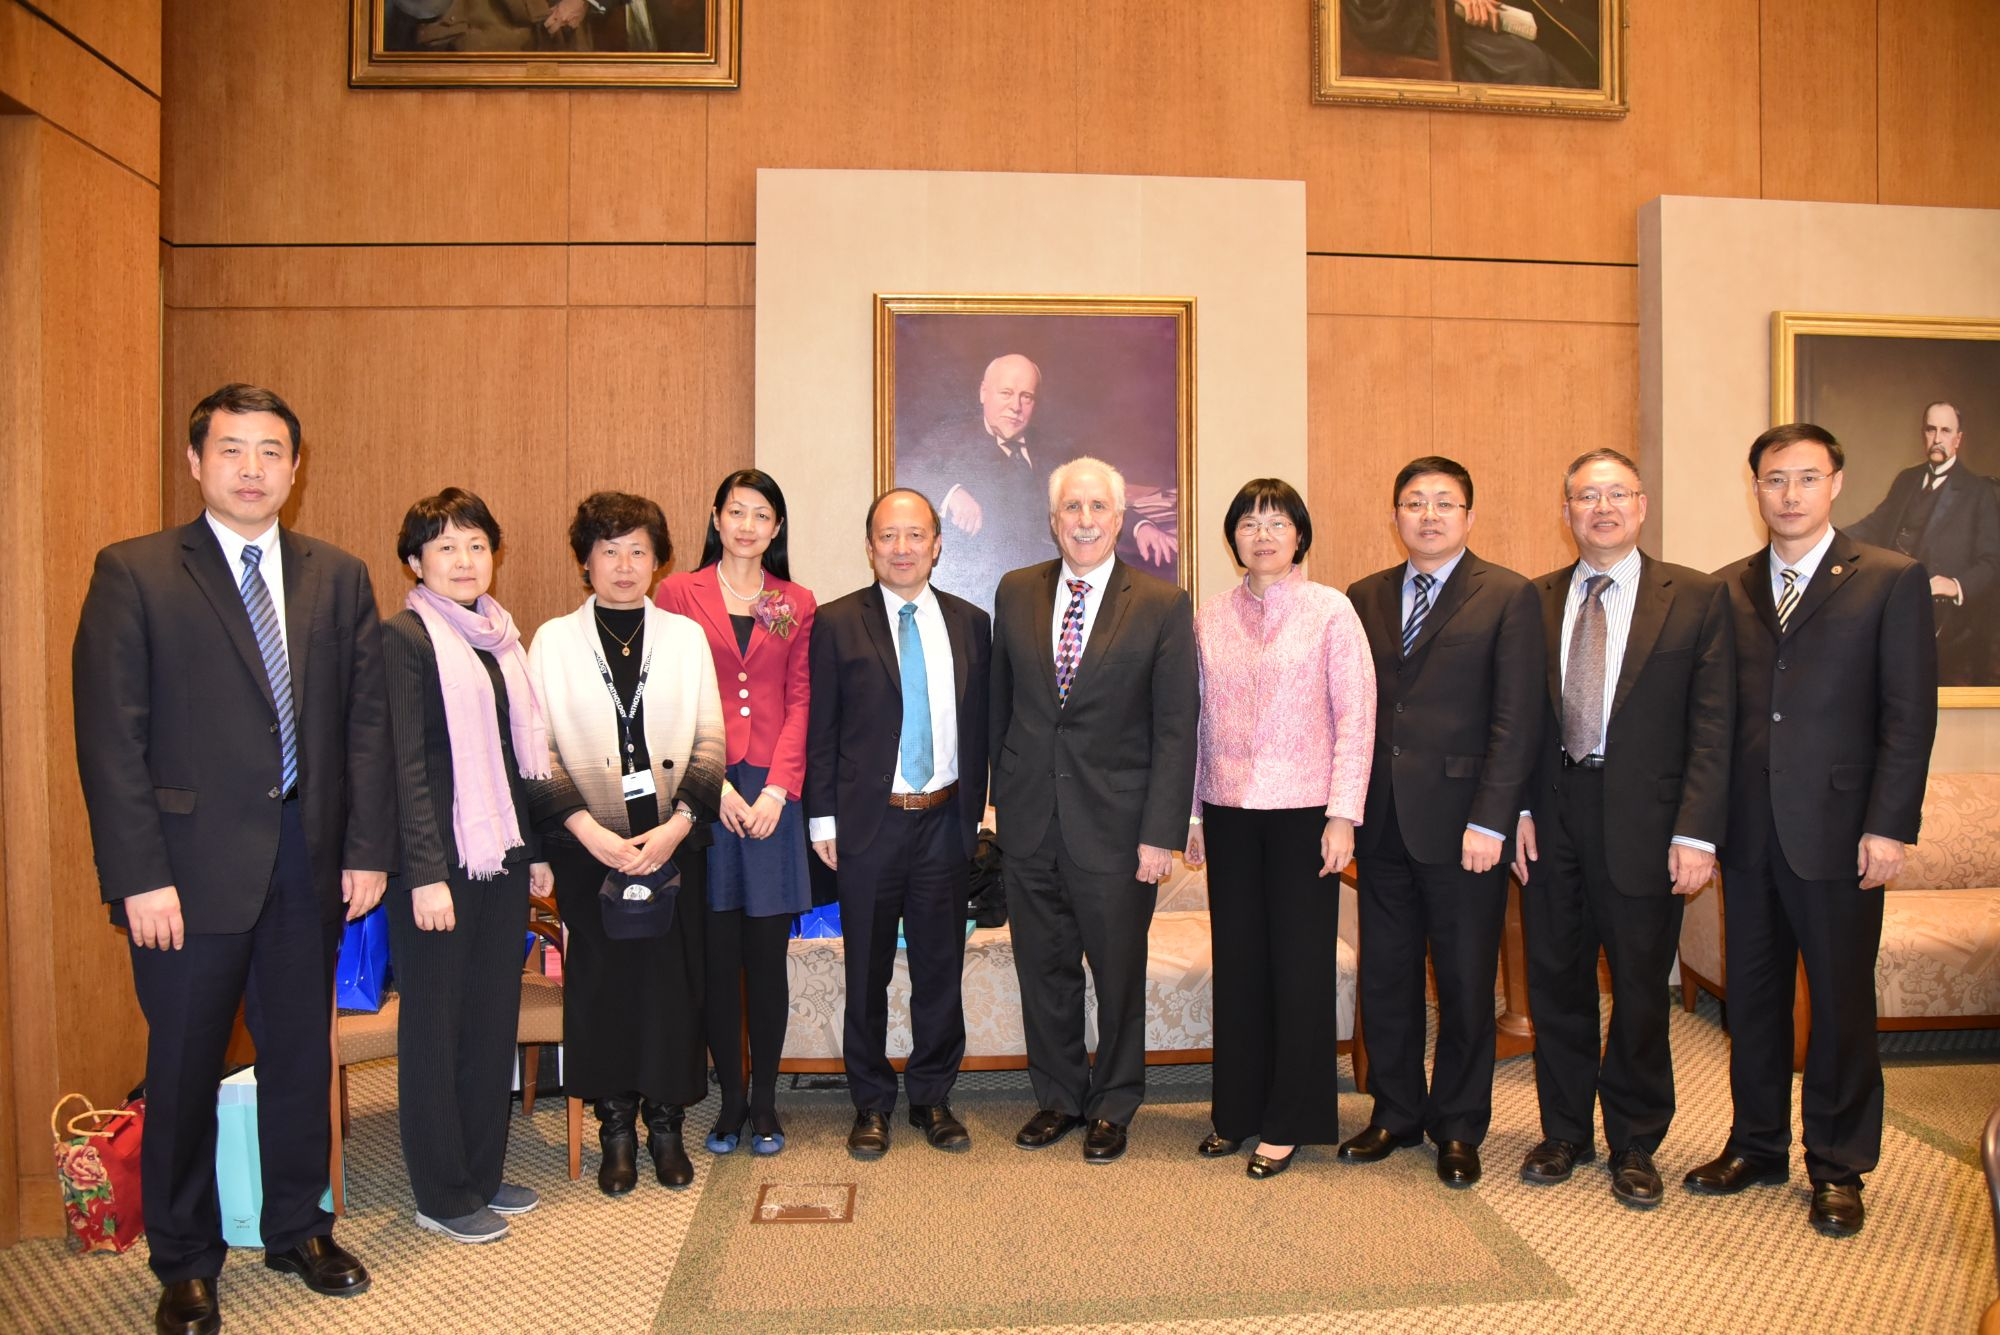 SUSTech and Shenzhen Municipal Government Delegation Visits Johns Hopkins University to Promote Bilateral Cooperation